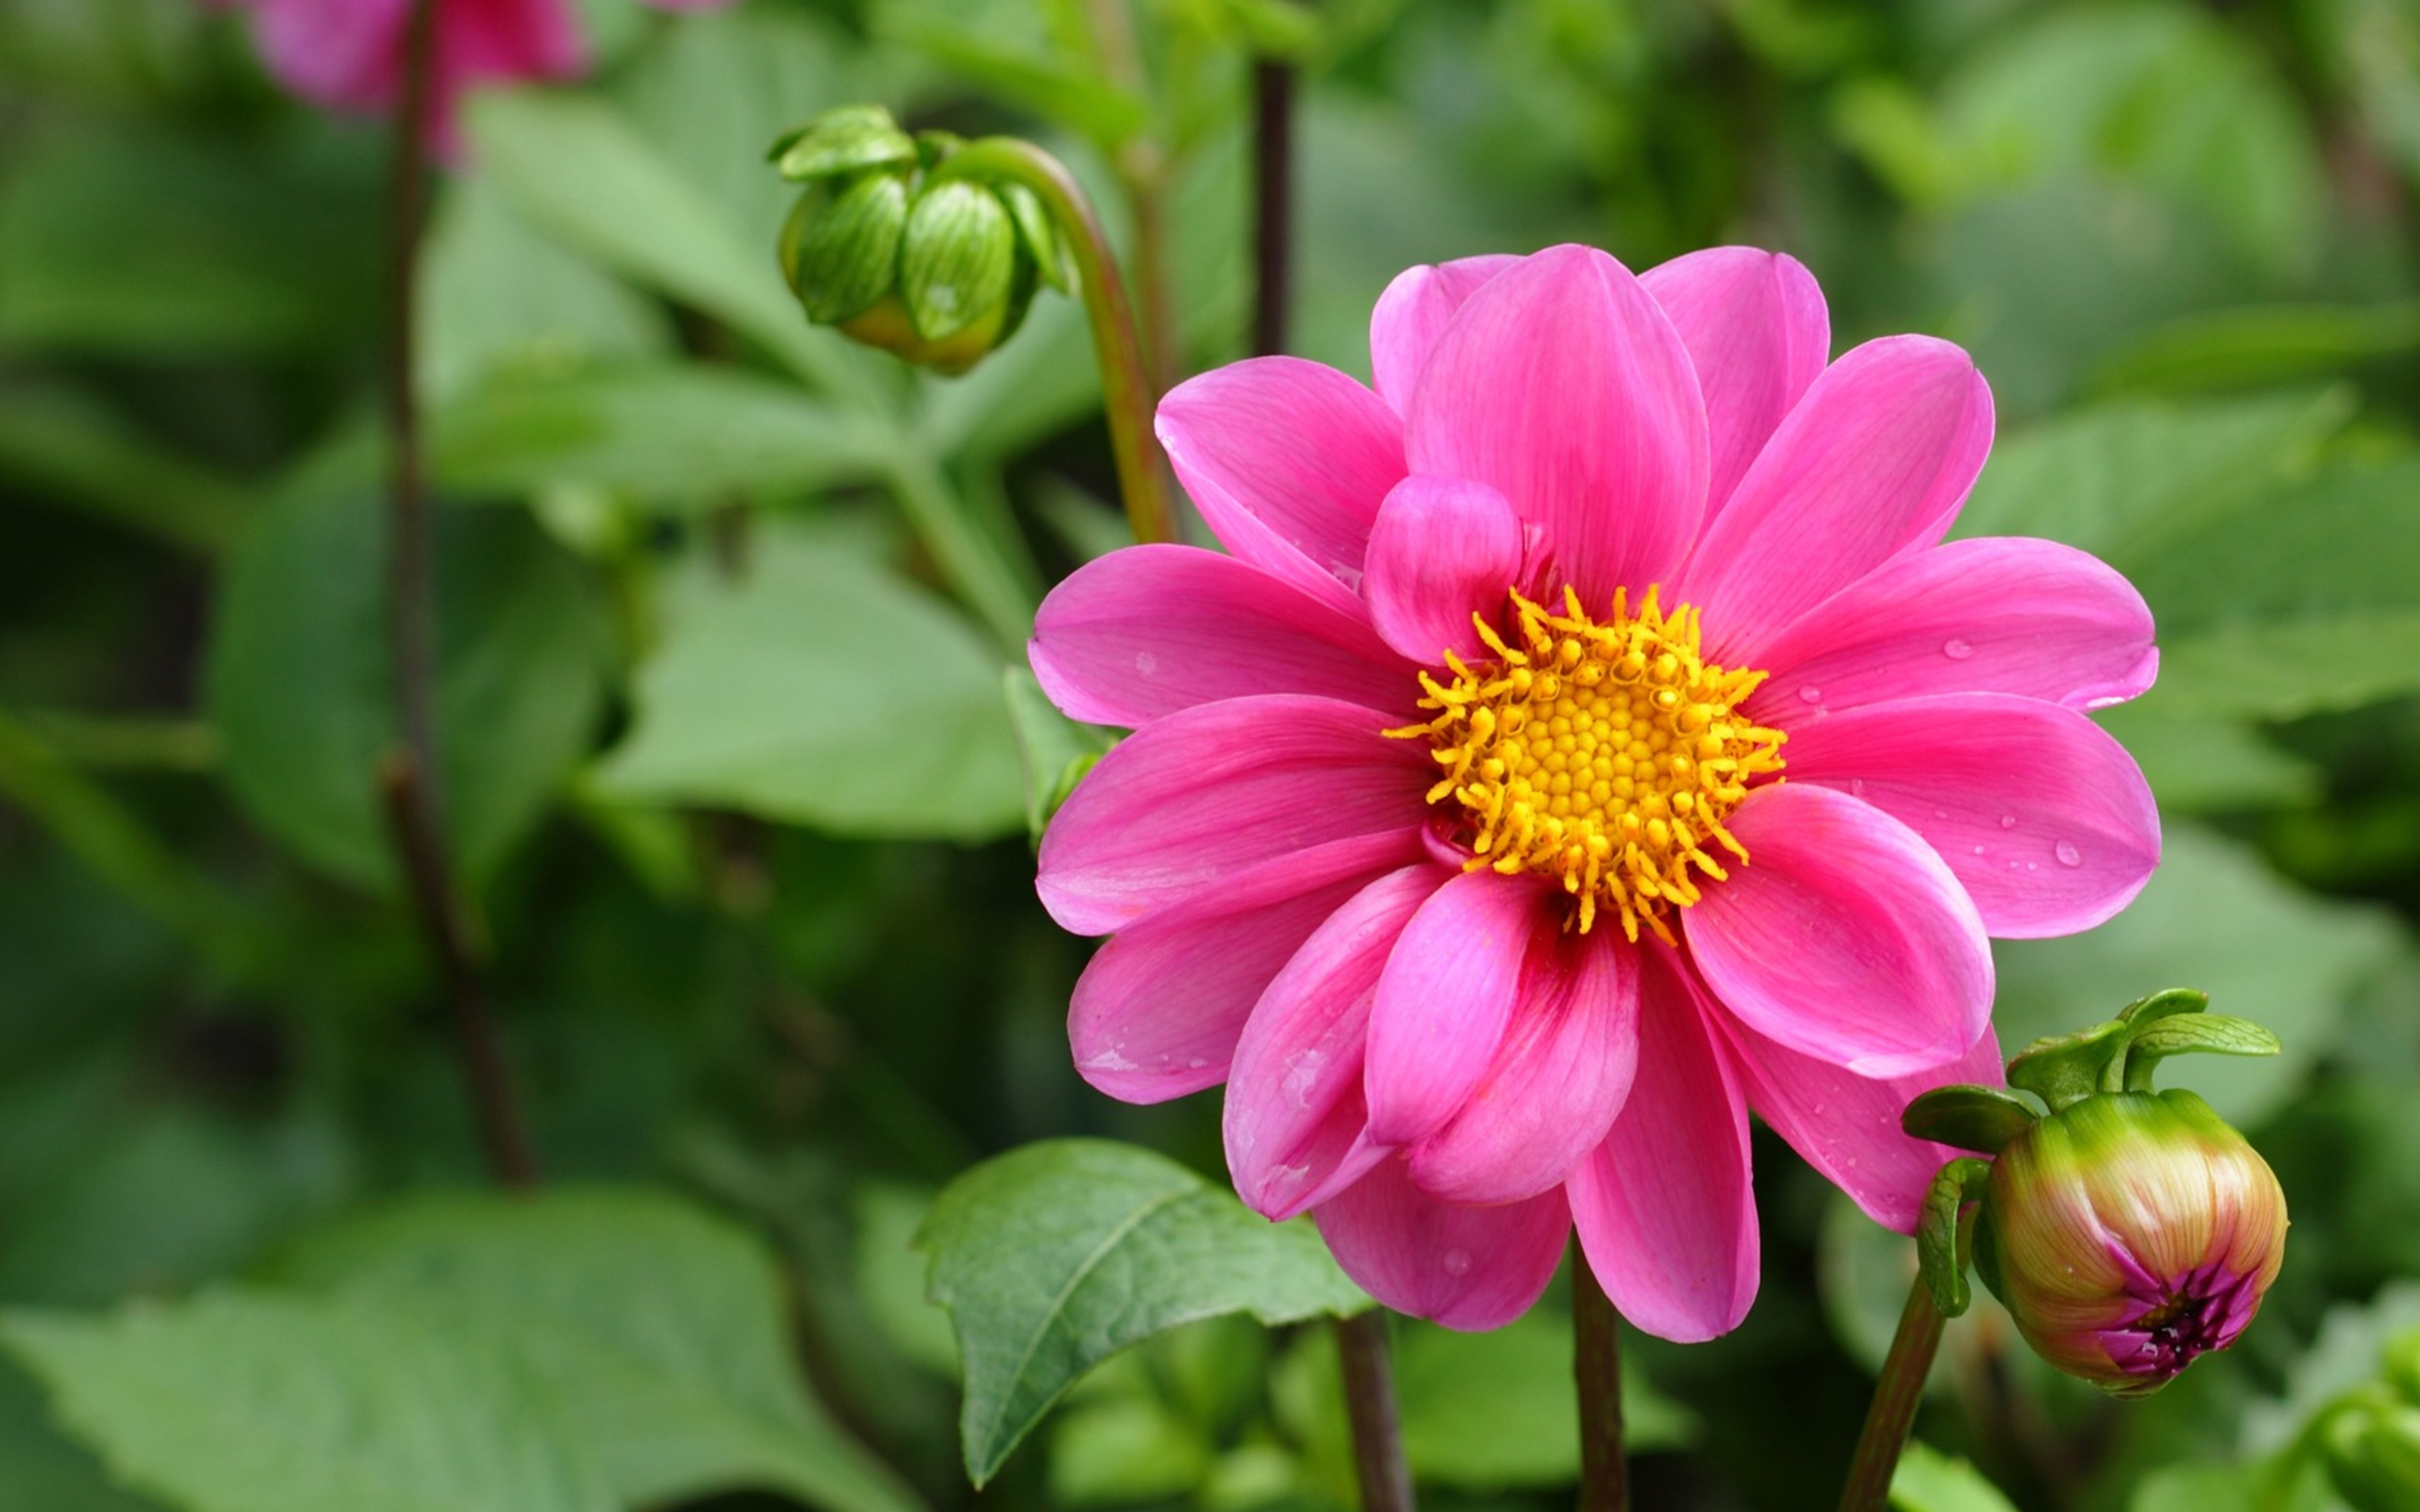 Free photo: Beautiful pink flower - Garden, Natural, Nature - Free ...